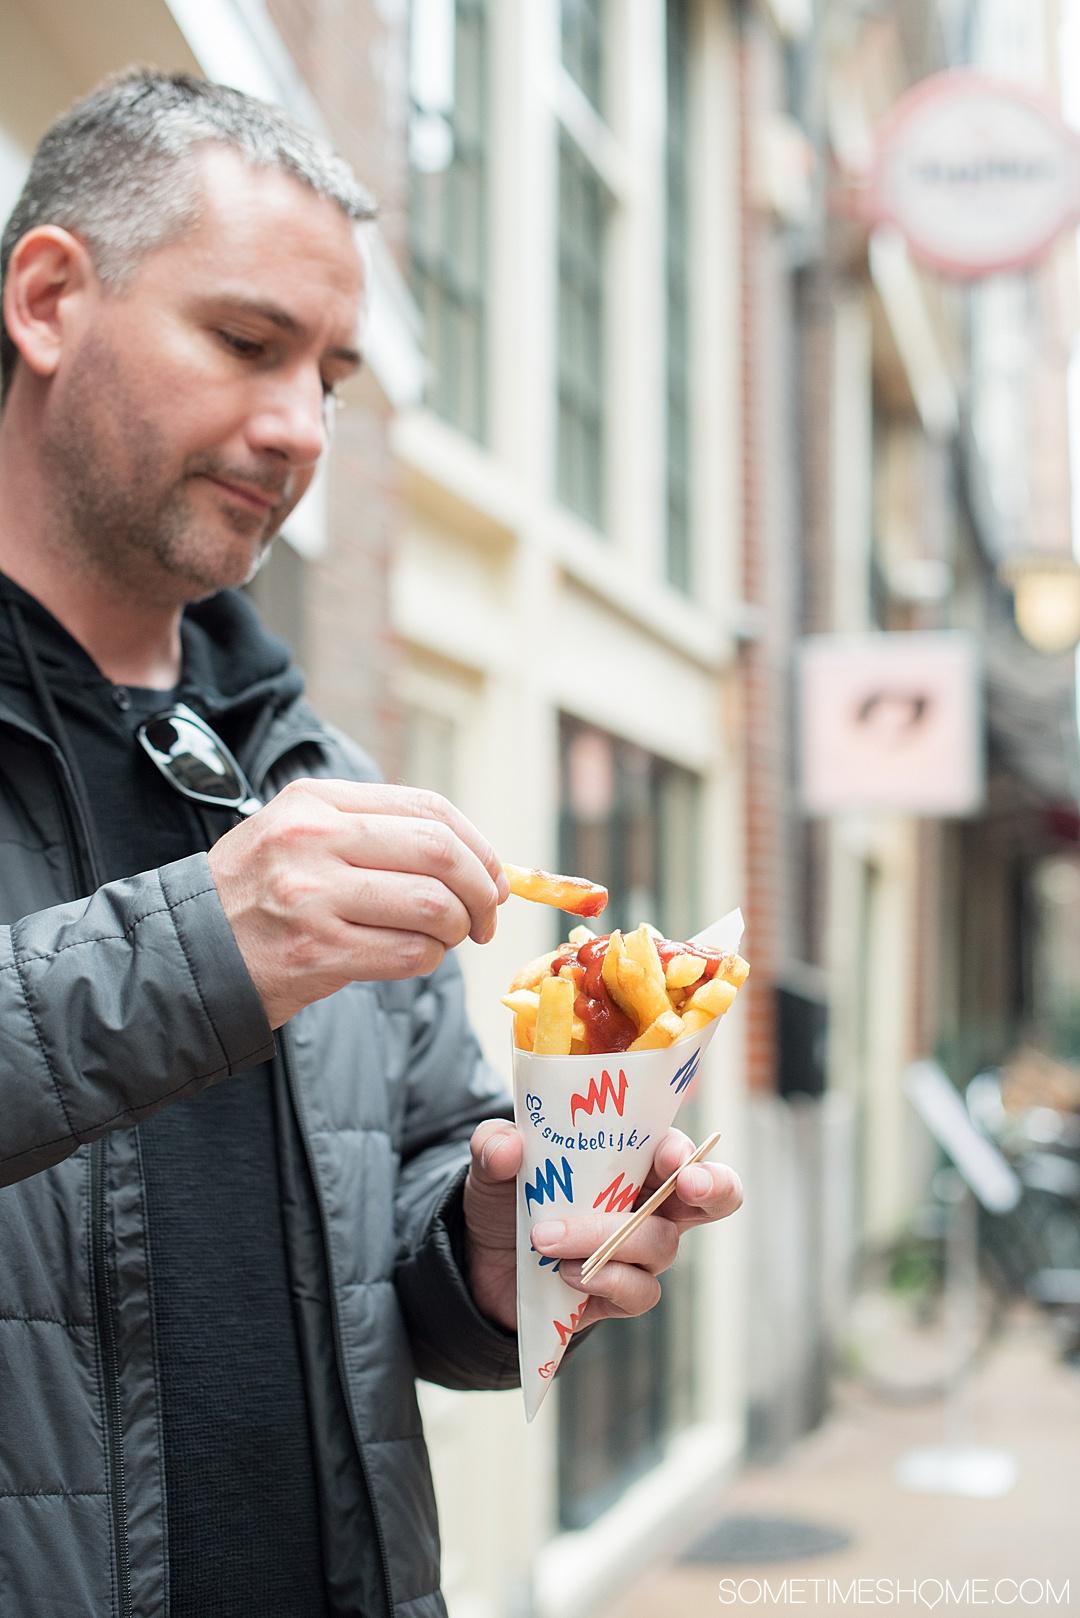 Traditional Dutch foods and drinks to taste in The Netherlands. From Amsterdam desserts to drinks in Holland, cheese in the countryside and more we have your list of snacks and sweets to taste including Herring fish, mini pancakes poffertjes, and stroopwafels. #SometimesHome #TheNetherlands #TraditionalFoods #Dutch #Holland #TypicalCuisine #DutchBeer #DutchFood #AmsterdamArea #DutchFries